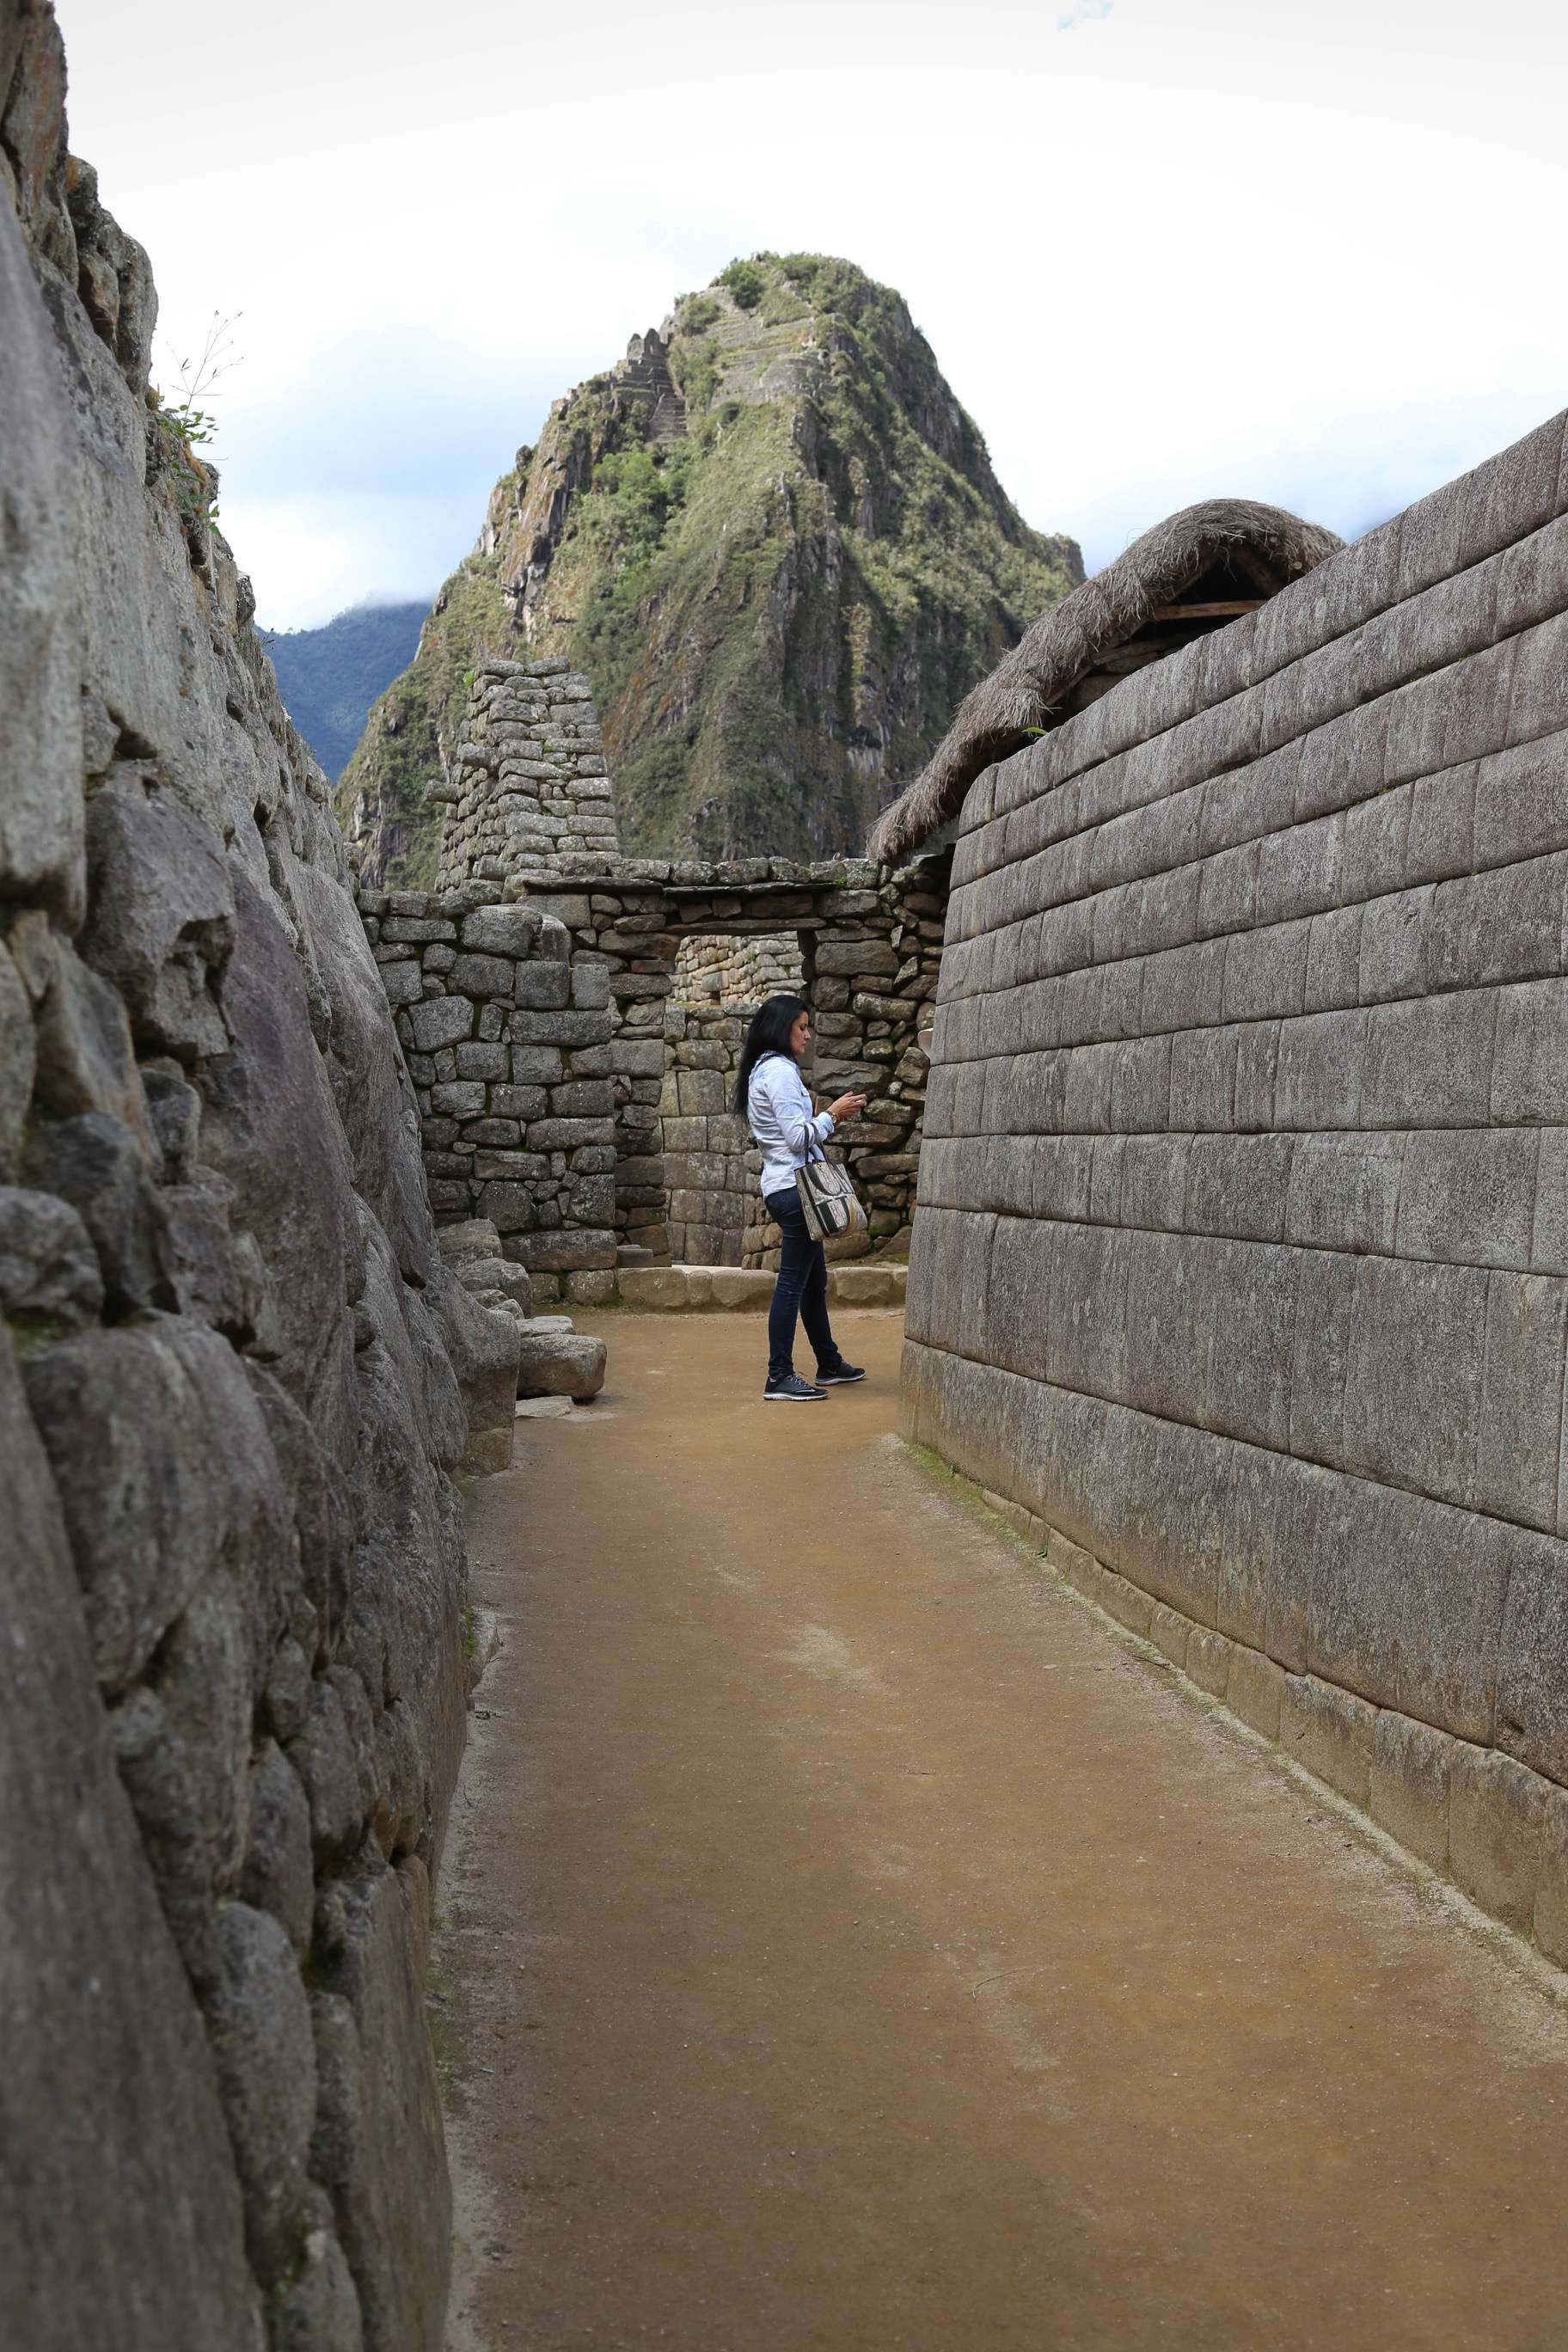 The Incas could fit stone precisely, but they did not have metal tools. It is thought they used harder river rock from the Urubamba River to shape the stones and then a slurry mixture of sand and water to smooth and finish the white granite.